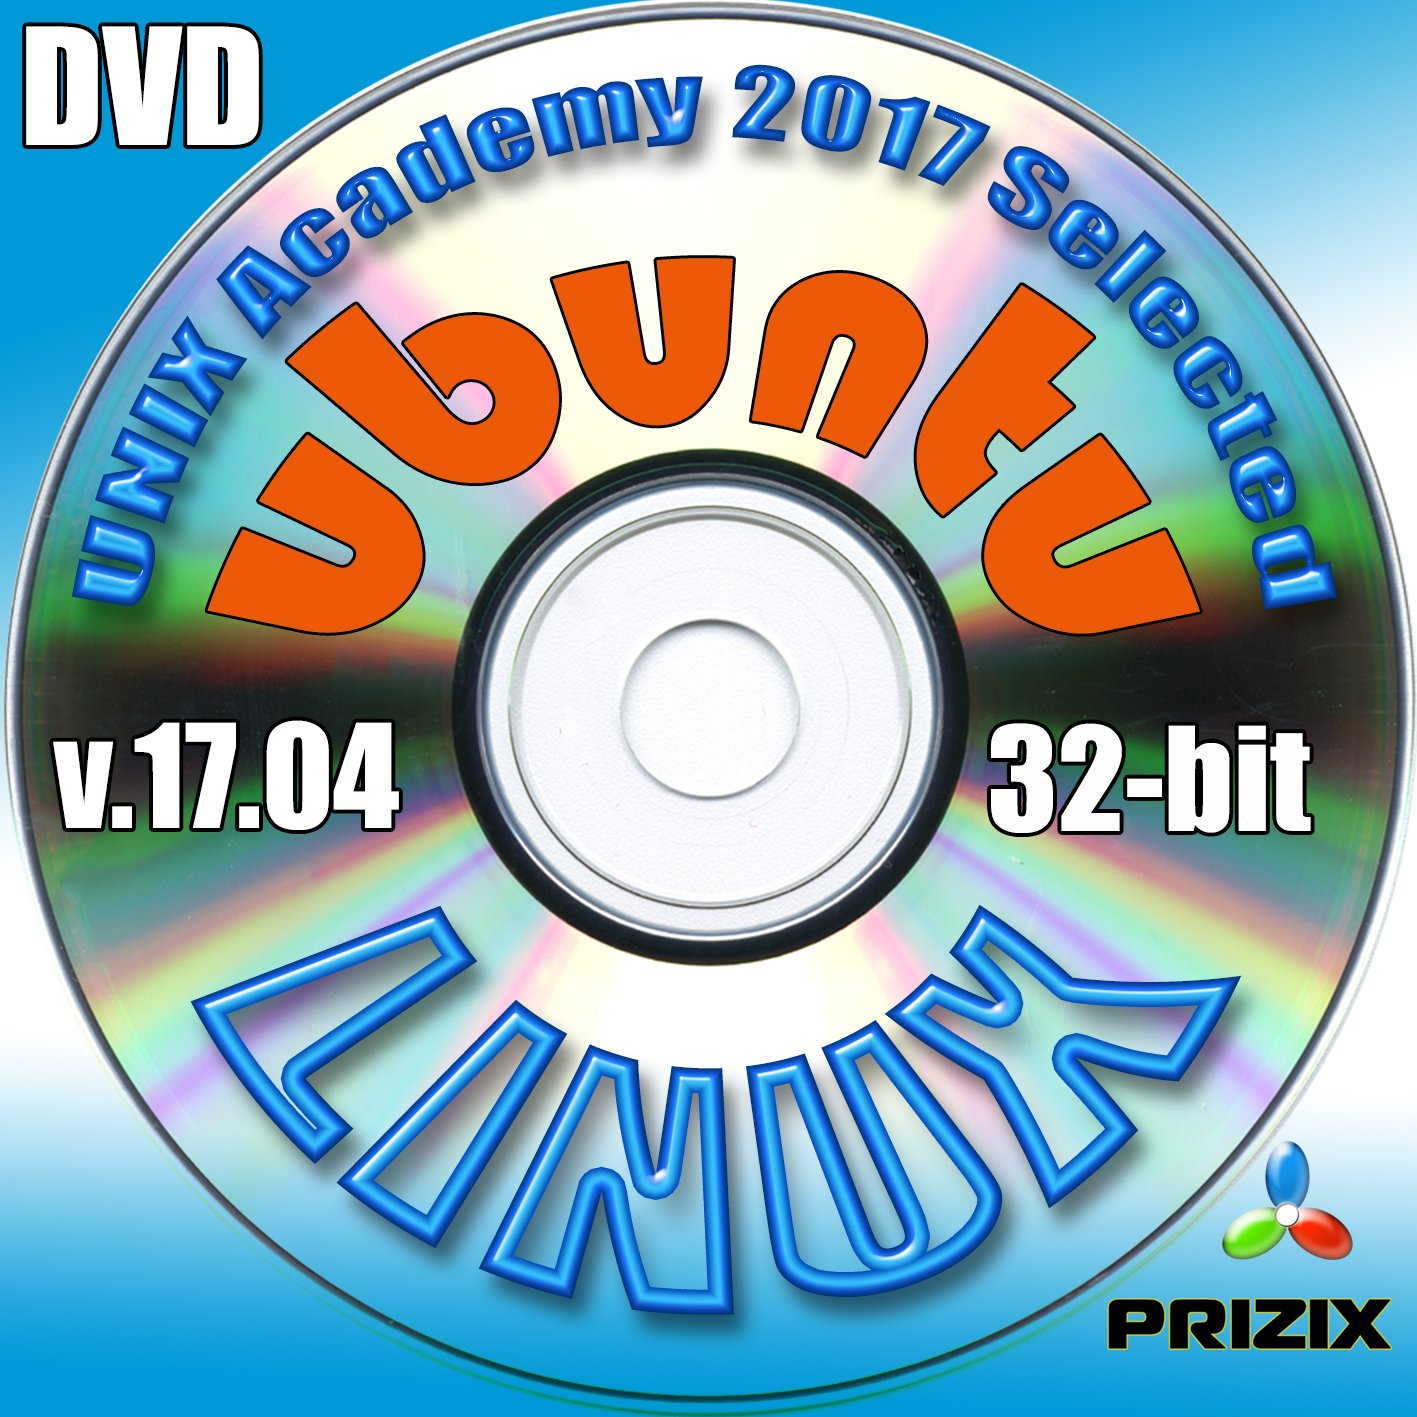 Linux on 16Gb USB Flash and 5-DVDs, Installation and Reference Set, Newest Linux Release 32-bit: CentOS 6, Ubuntu 17.04, Debian 9 and Fedora 26 by PRIZIX